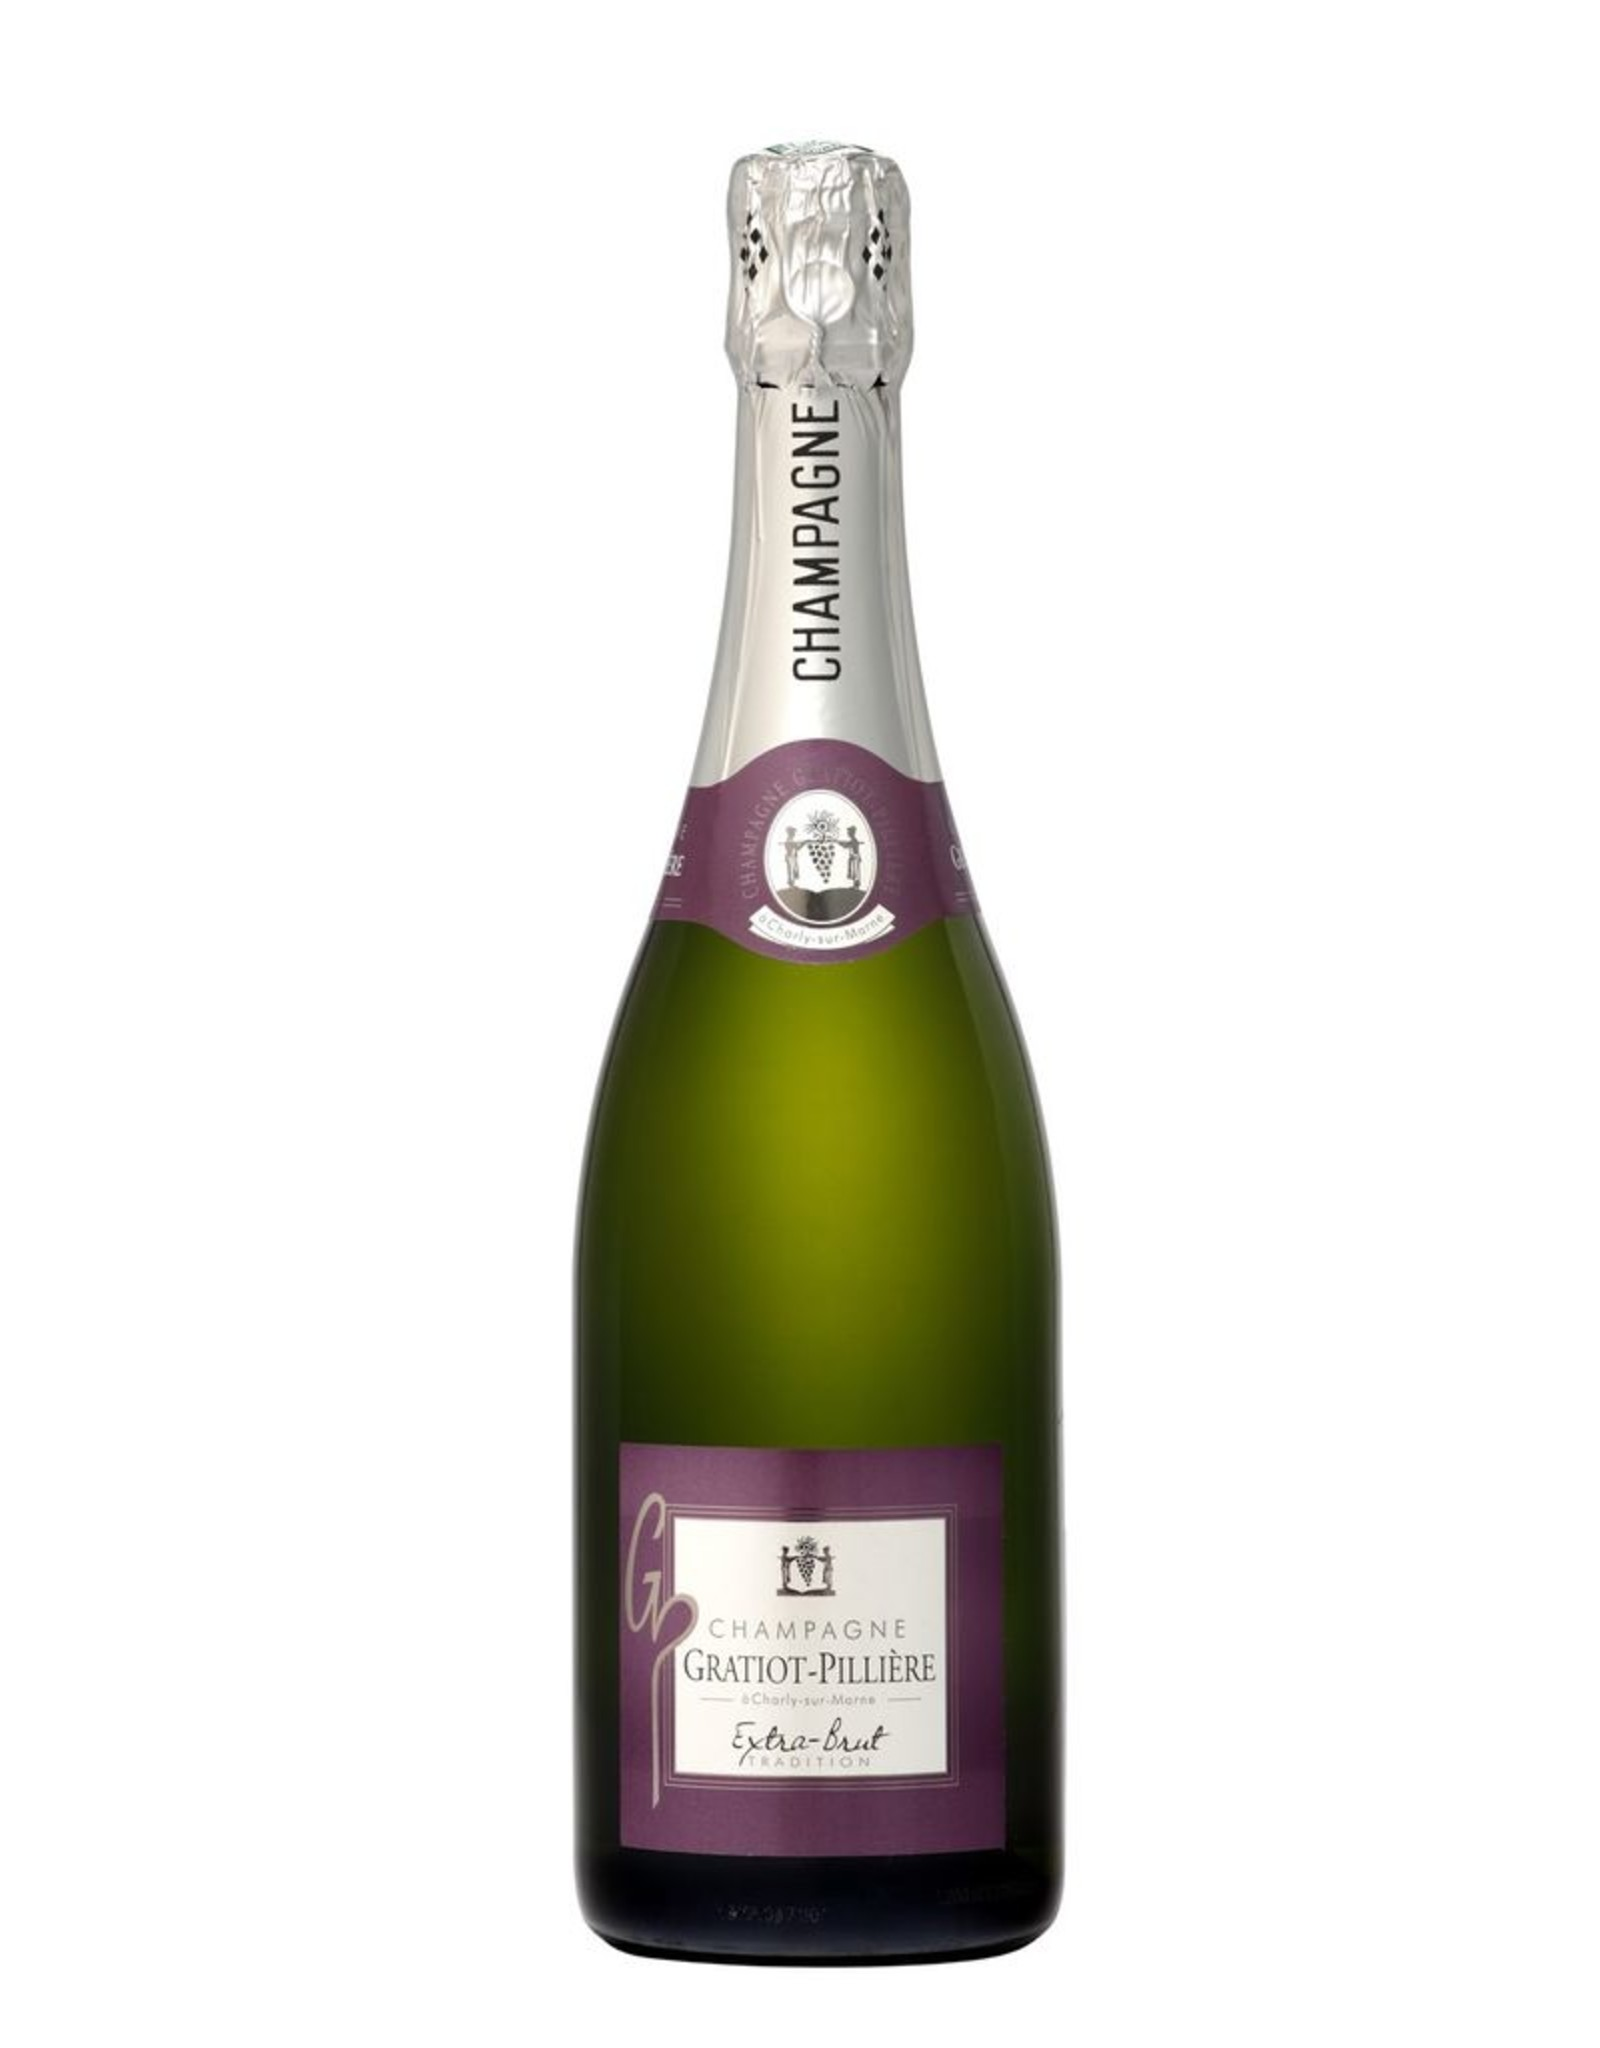 Sparkling Wine NV, Gratiot-Pilliere Extra Brut, Champagne, Charly-sur-Marne, Champagne, France, 12% Alc, CT TW91